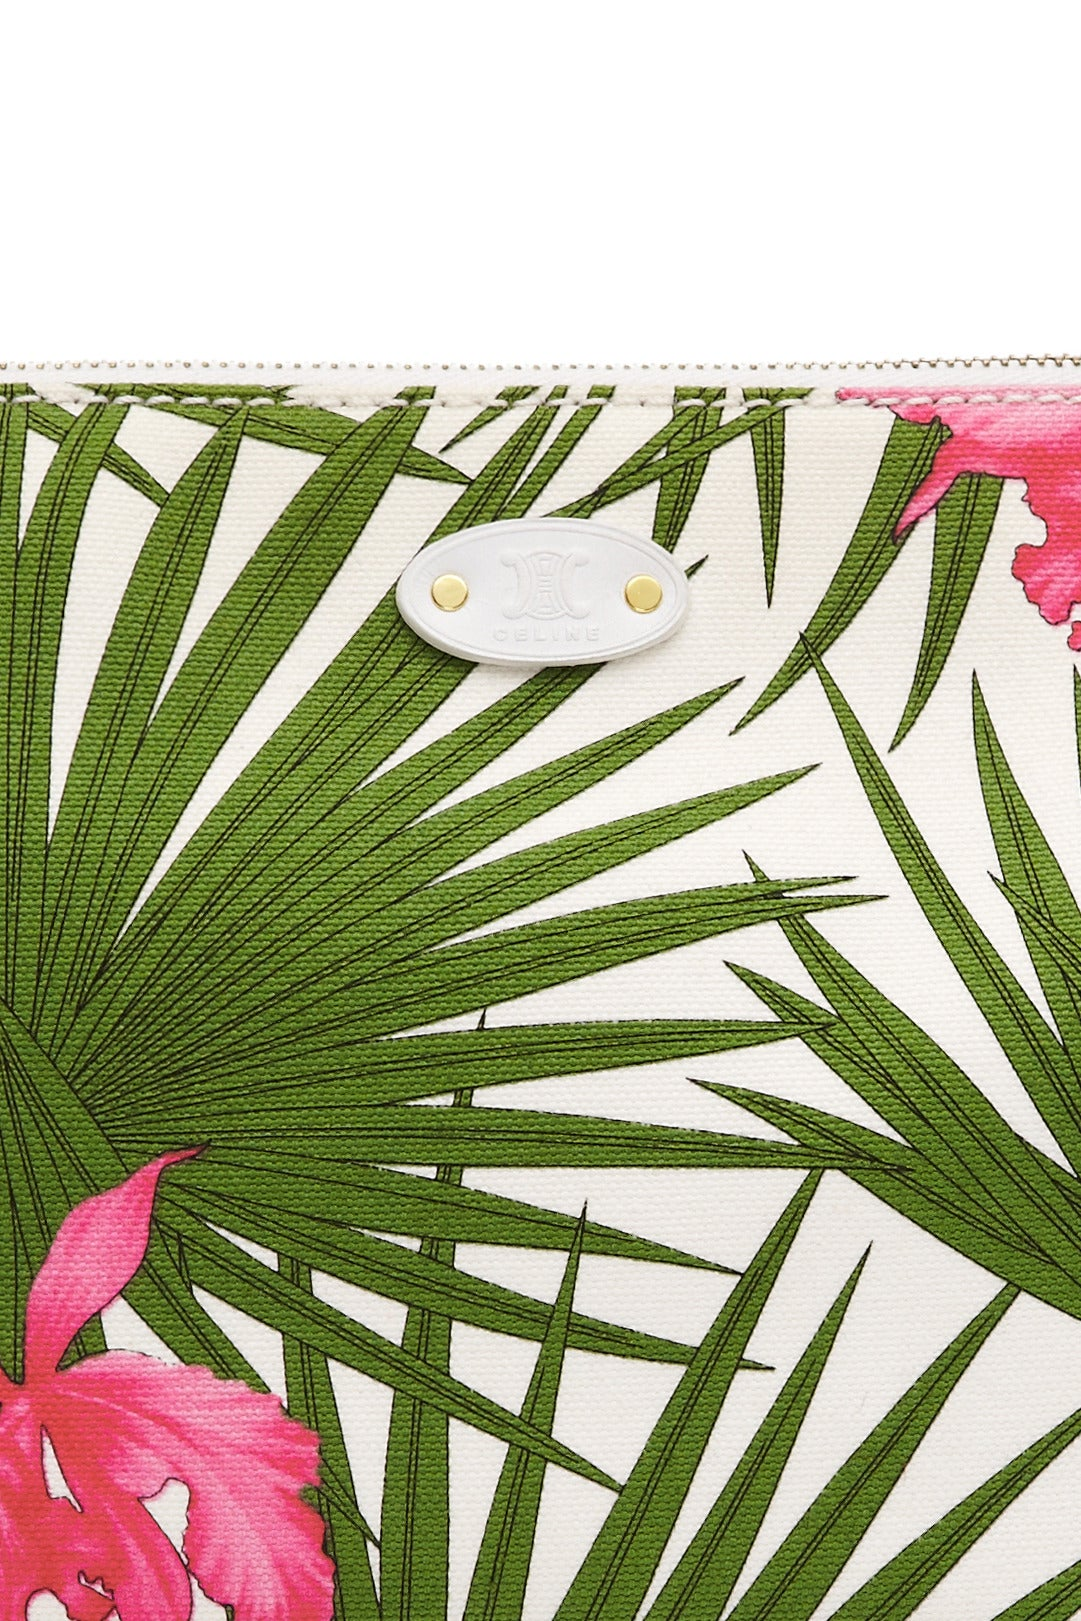 Beautiful 1990s Celine canvas bag with green and pink palm and floral print throughout, white leather trim and gold tone hardware.  This bag in fully lined in complimenting  bright pink canvas with an extra interior pocket.  A great piece in